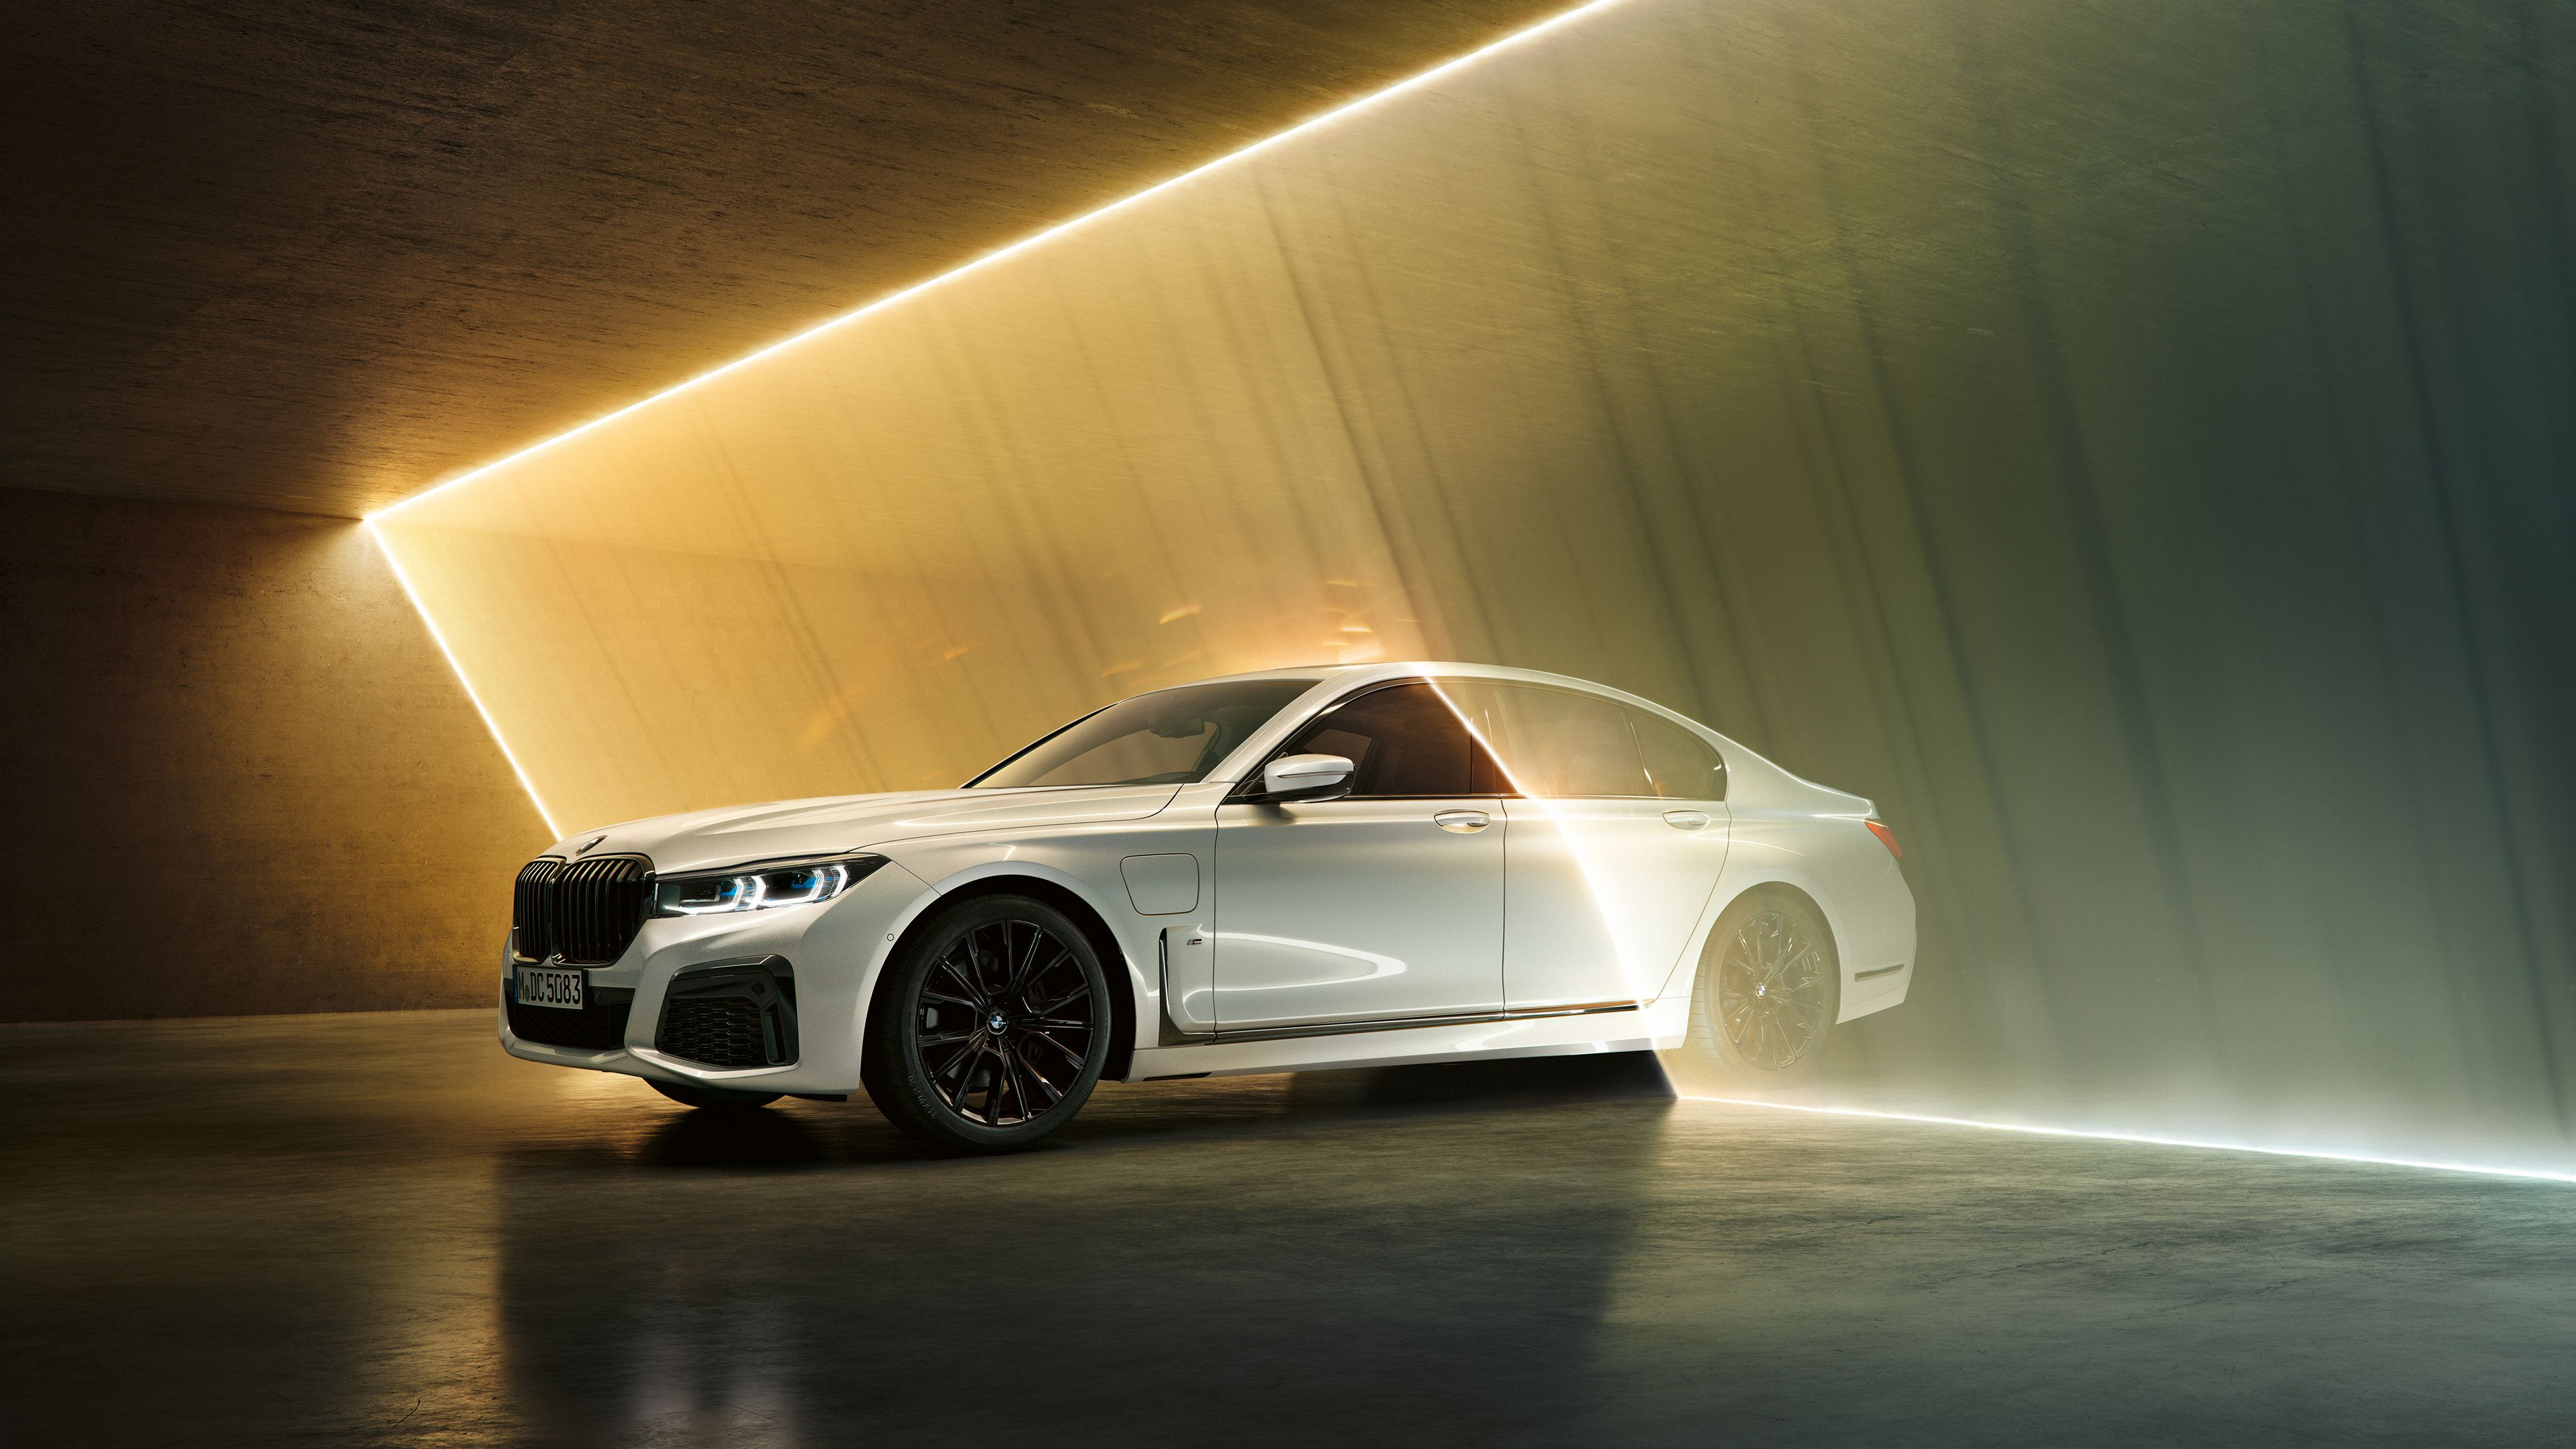 Bmw 745 M Sport 4k Hd Wallpapers Cars Wallpapers Bmw Wallpapers 4k Wallpapers Bmw 7 Series Bmw Wallpapers 2020 Bmw